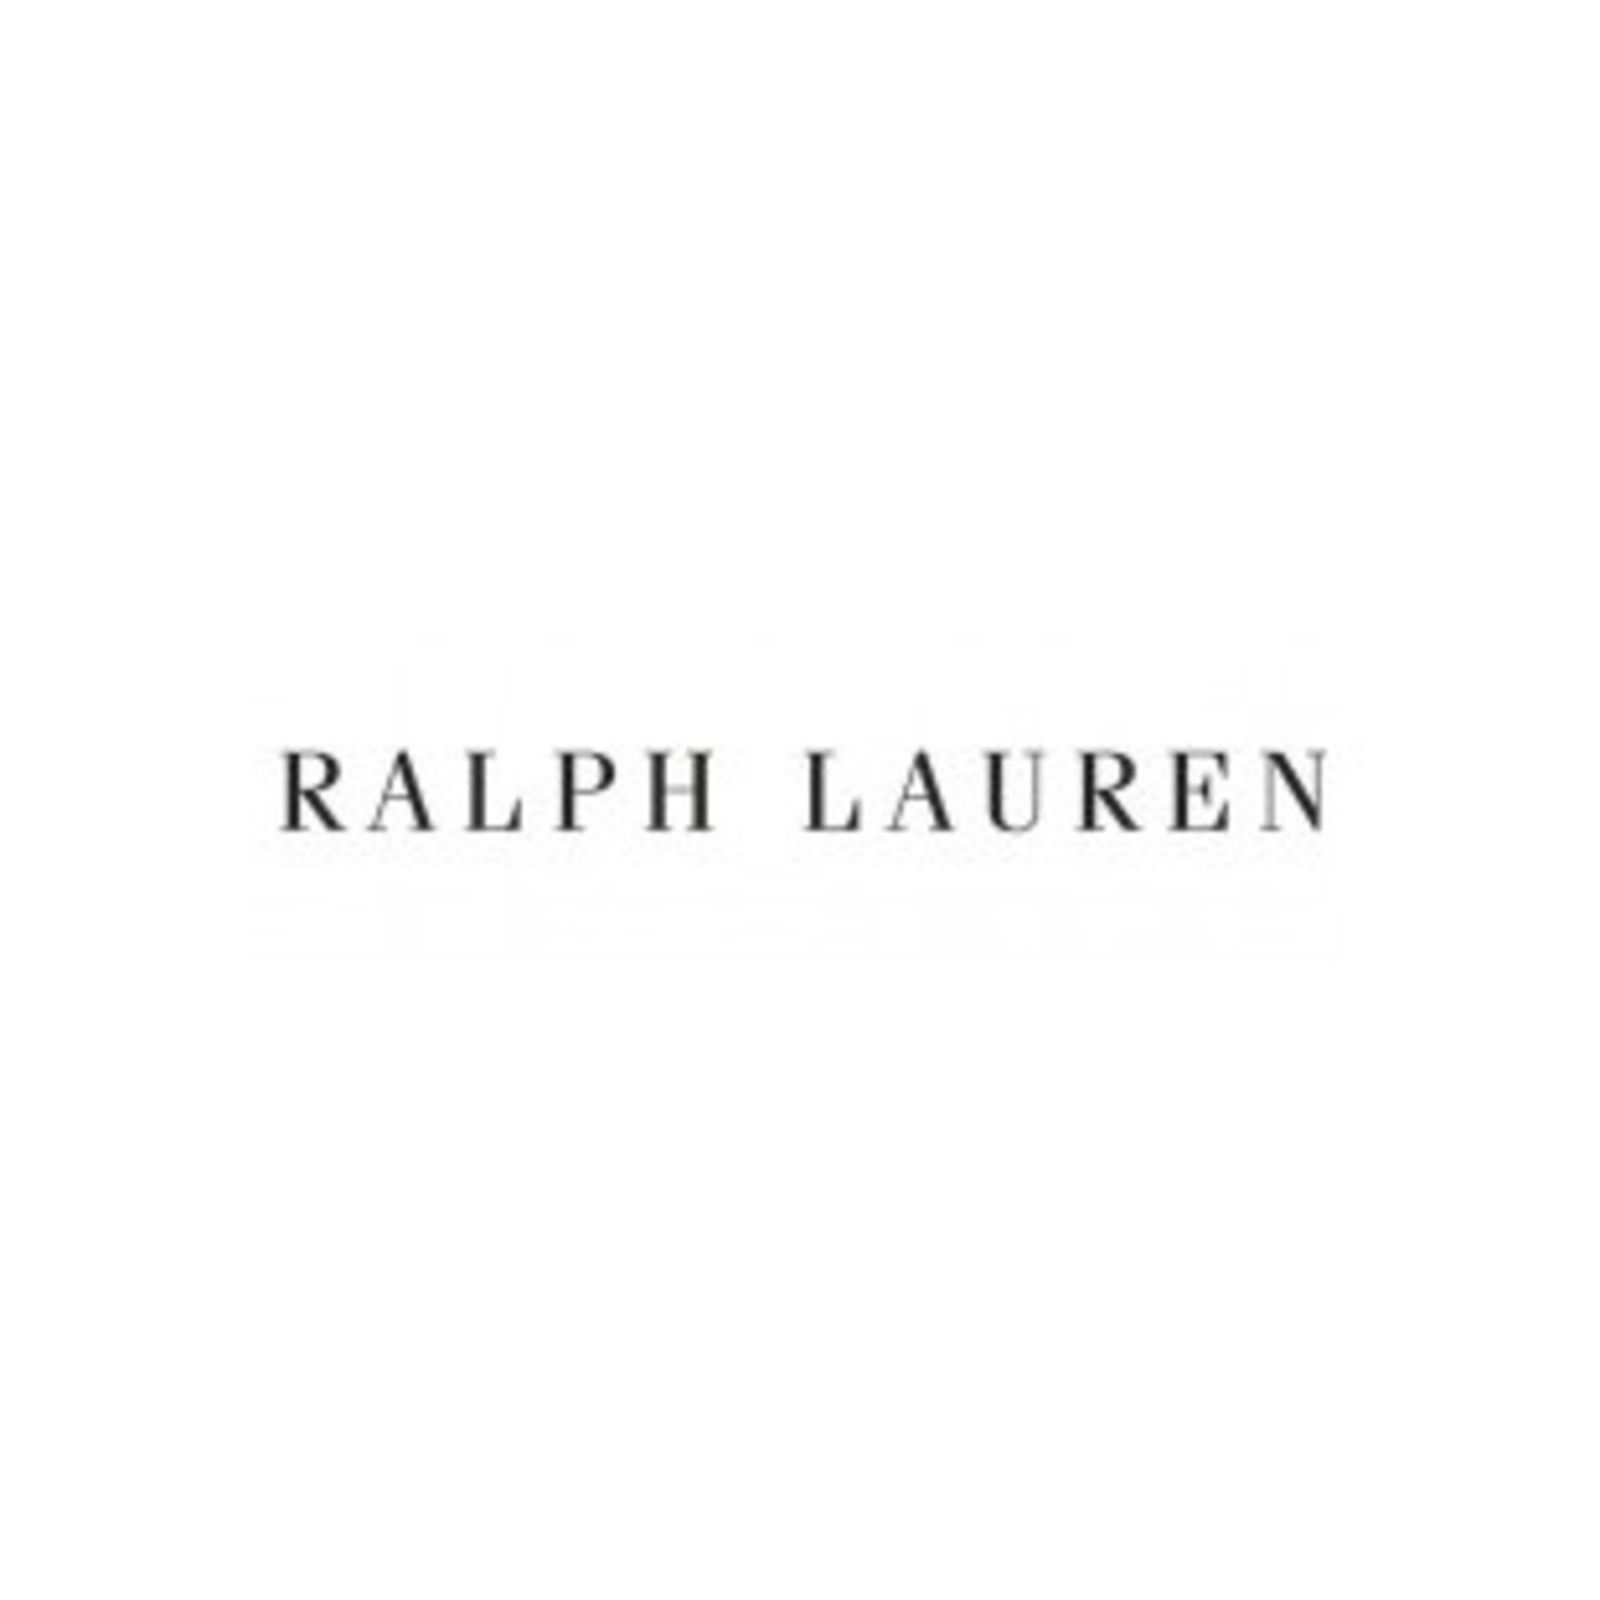 RALPH LAUREN COLLECTION (Image 1)